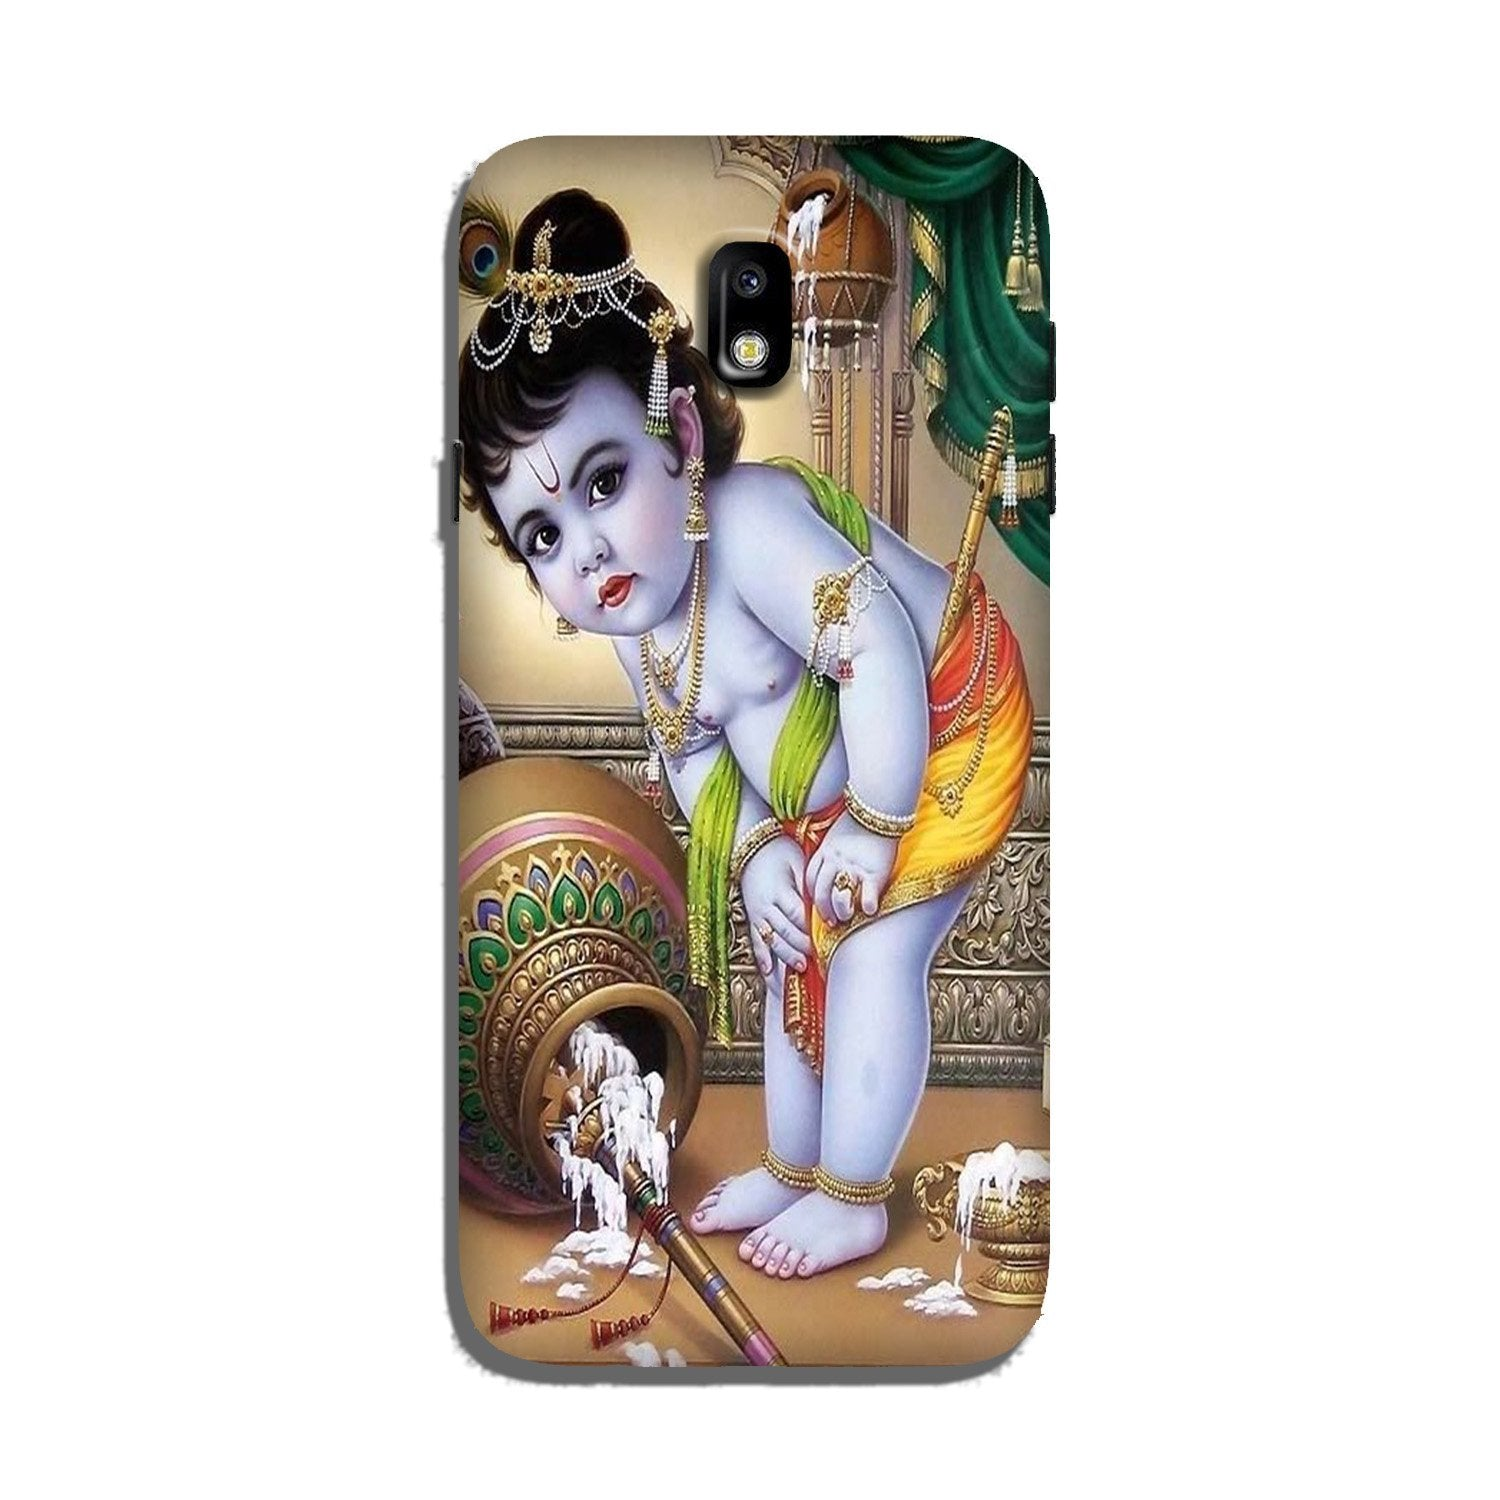 Bal Gopal2 Case for Galaxy J3 Pro